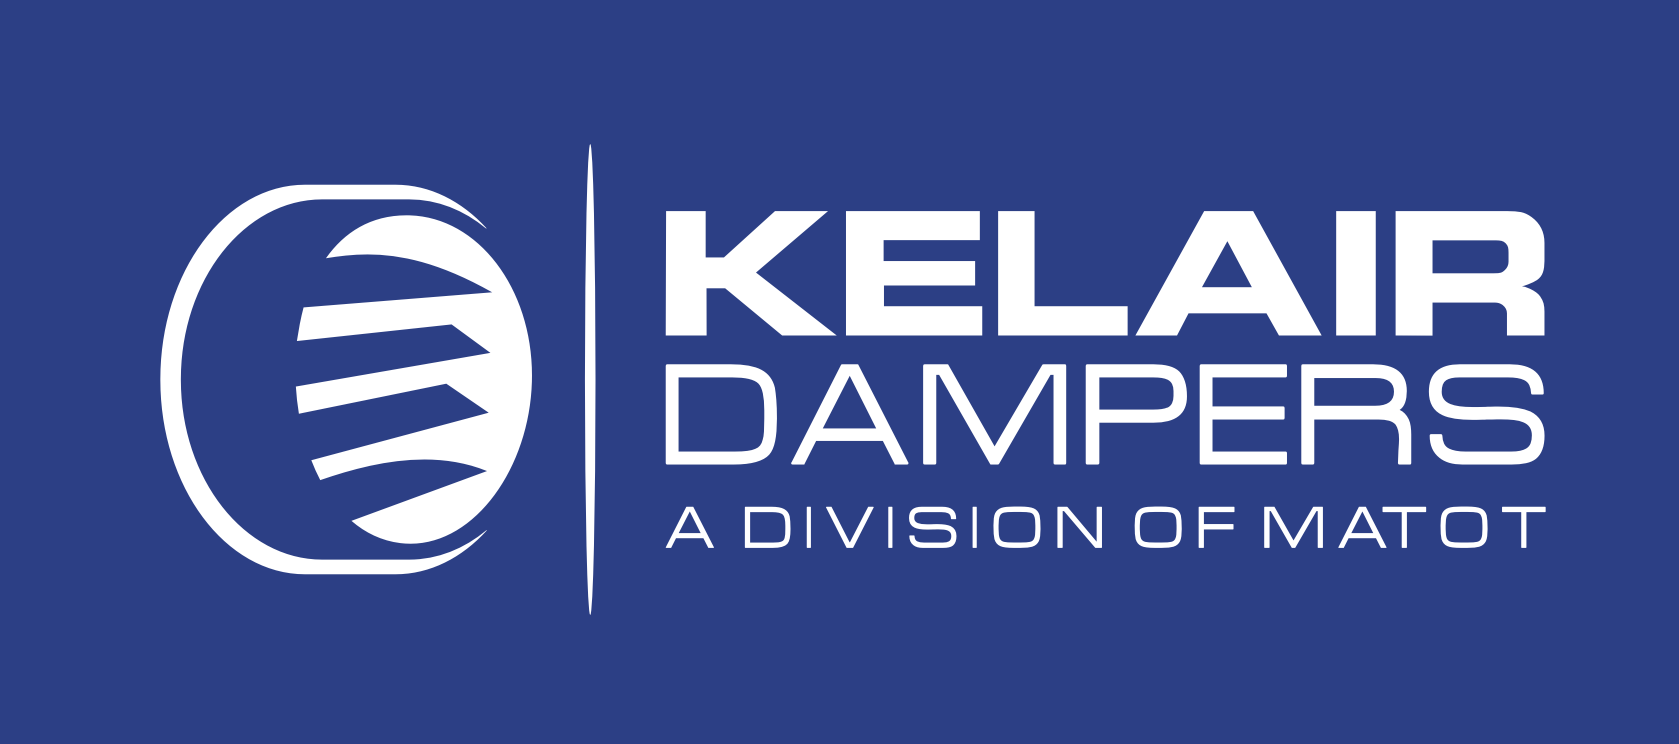 Kelair Damper Valves for more information contact us at www.duncanco.com